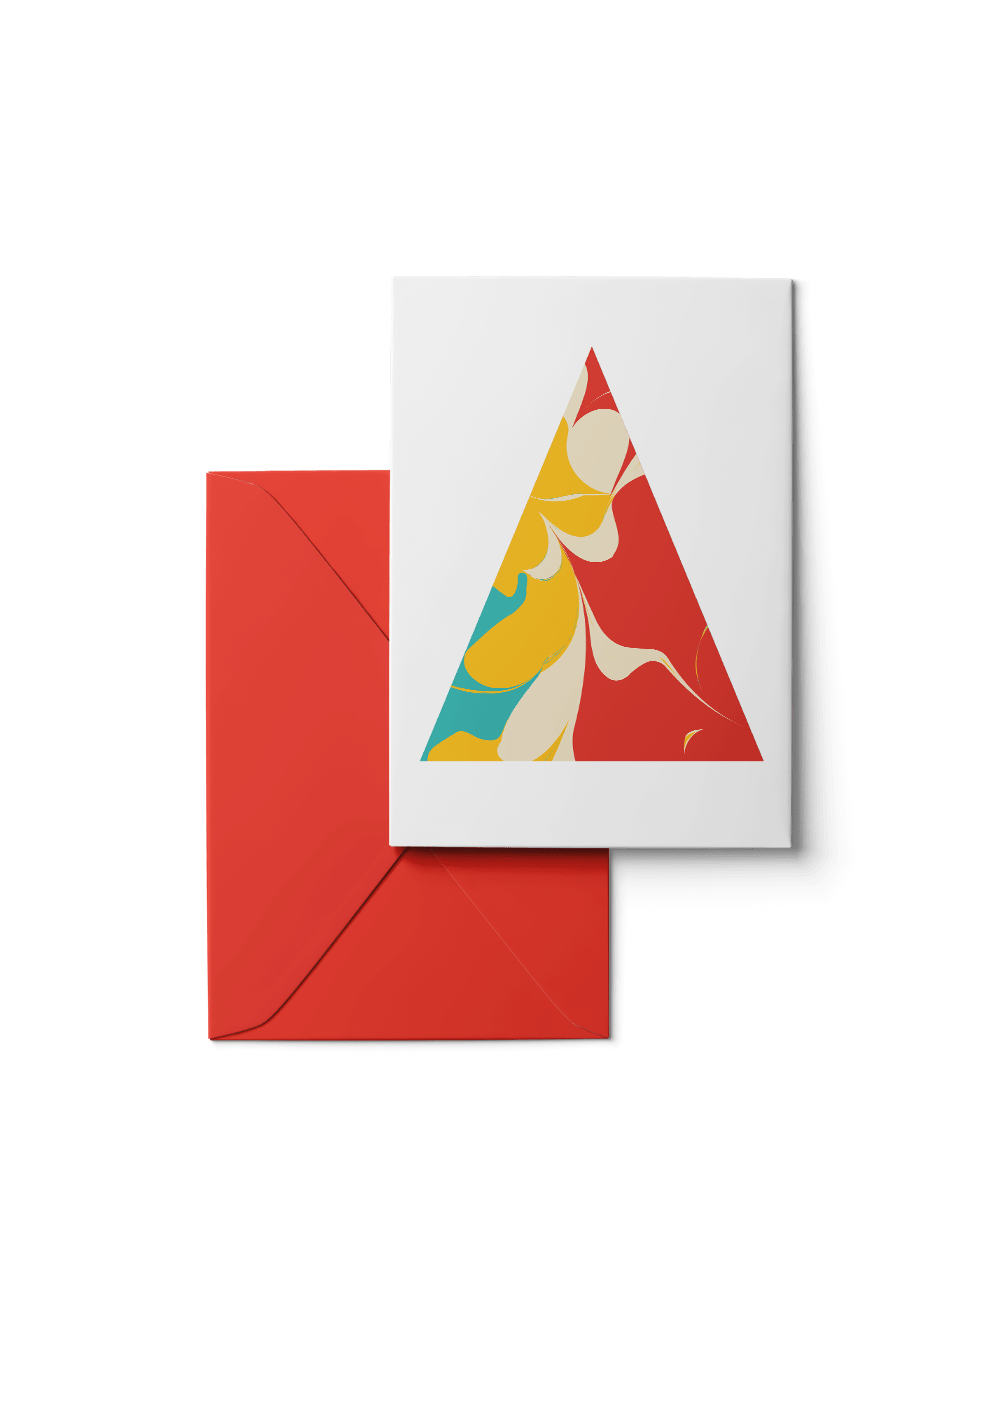 Tinte, Blood Orange, 6 Karten Set by Karten Design Fabrik. Supplier of designer Greeting Cards, Gift Wrap, Christmas Cards & Invitations to leading design stores including Connox, Modulor, Magazin & Manufactum.